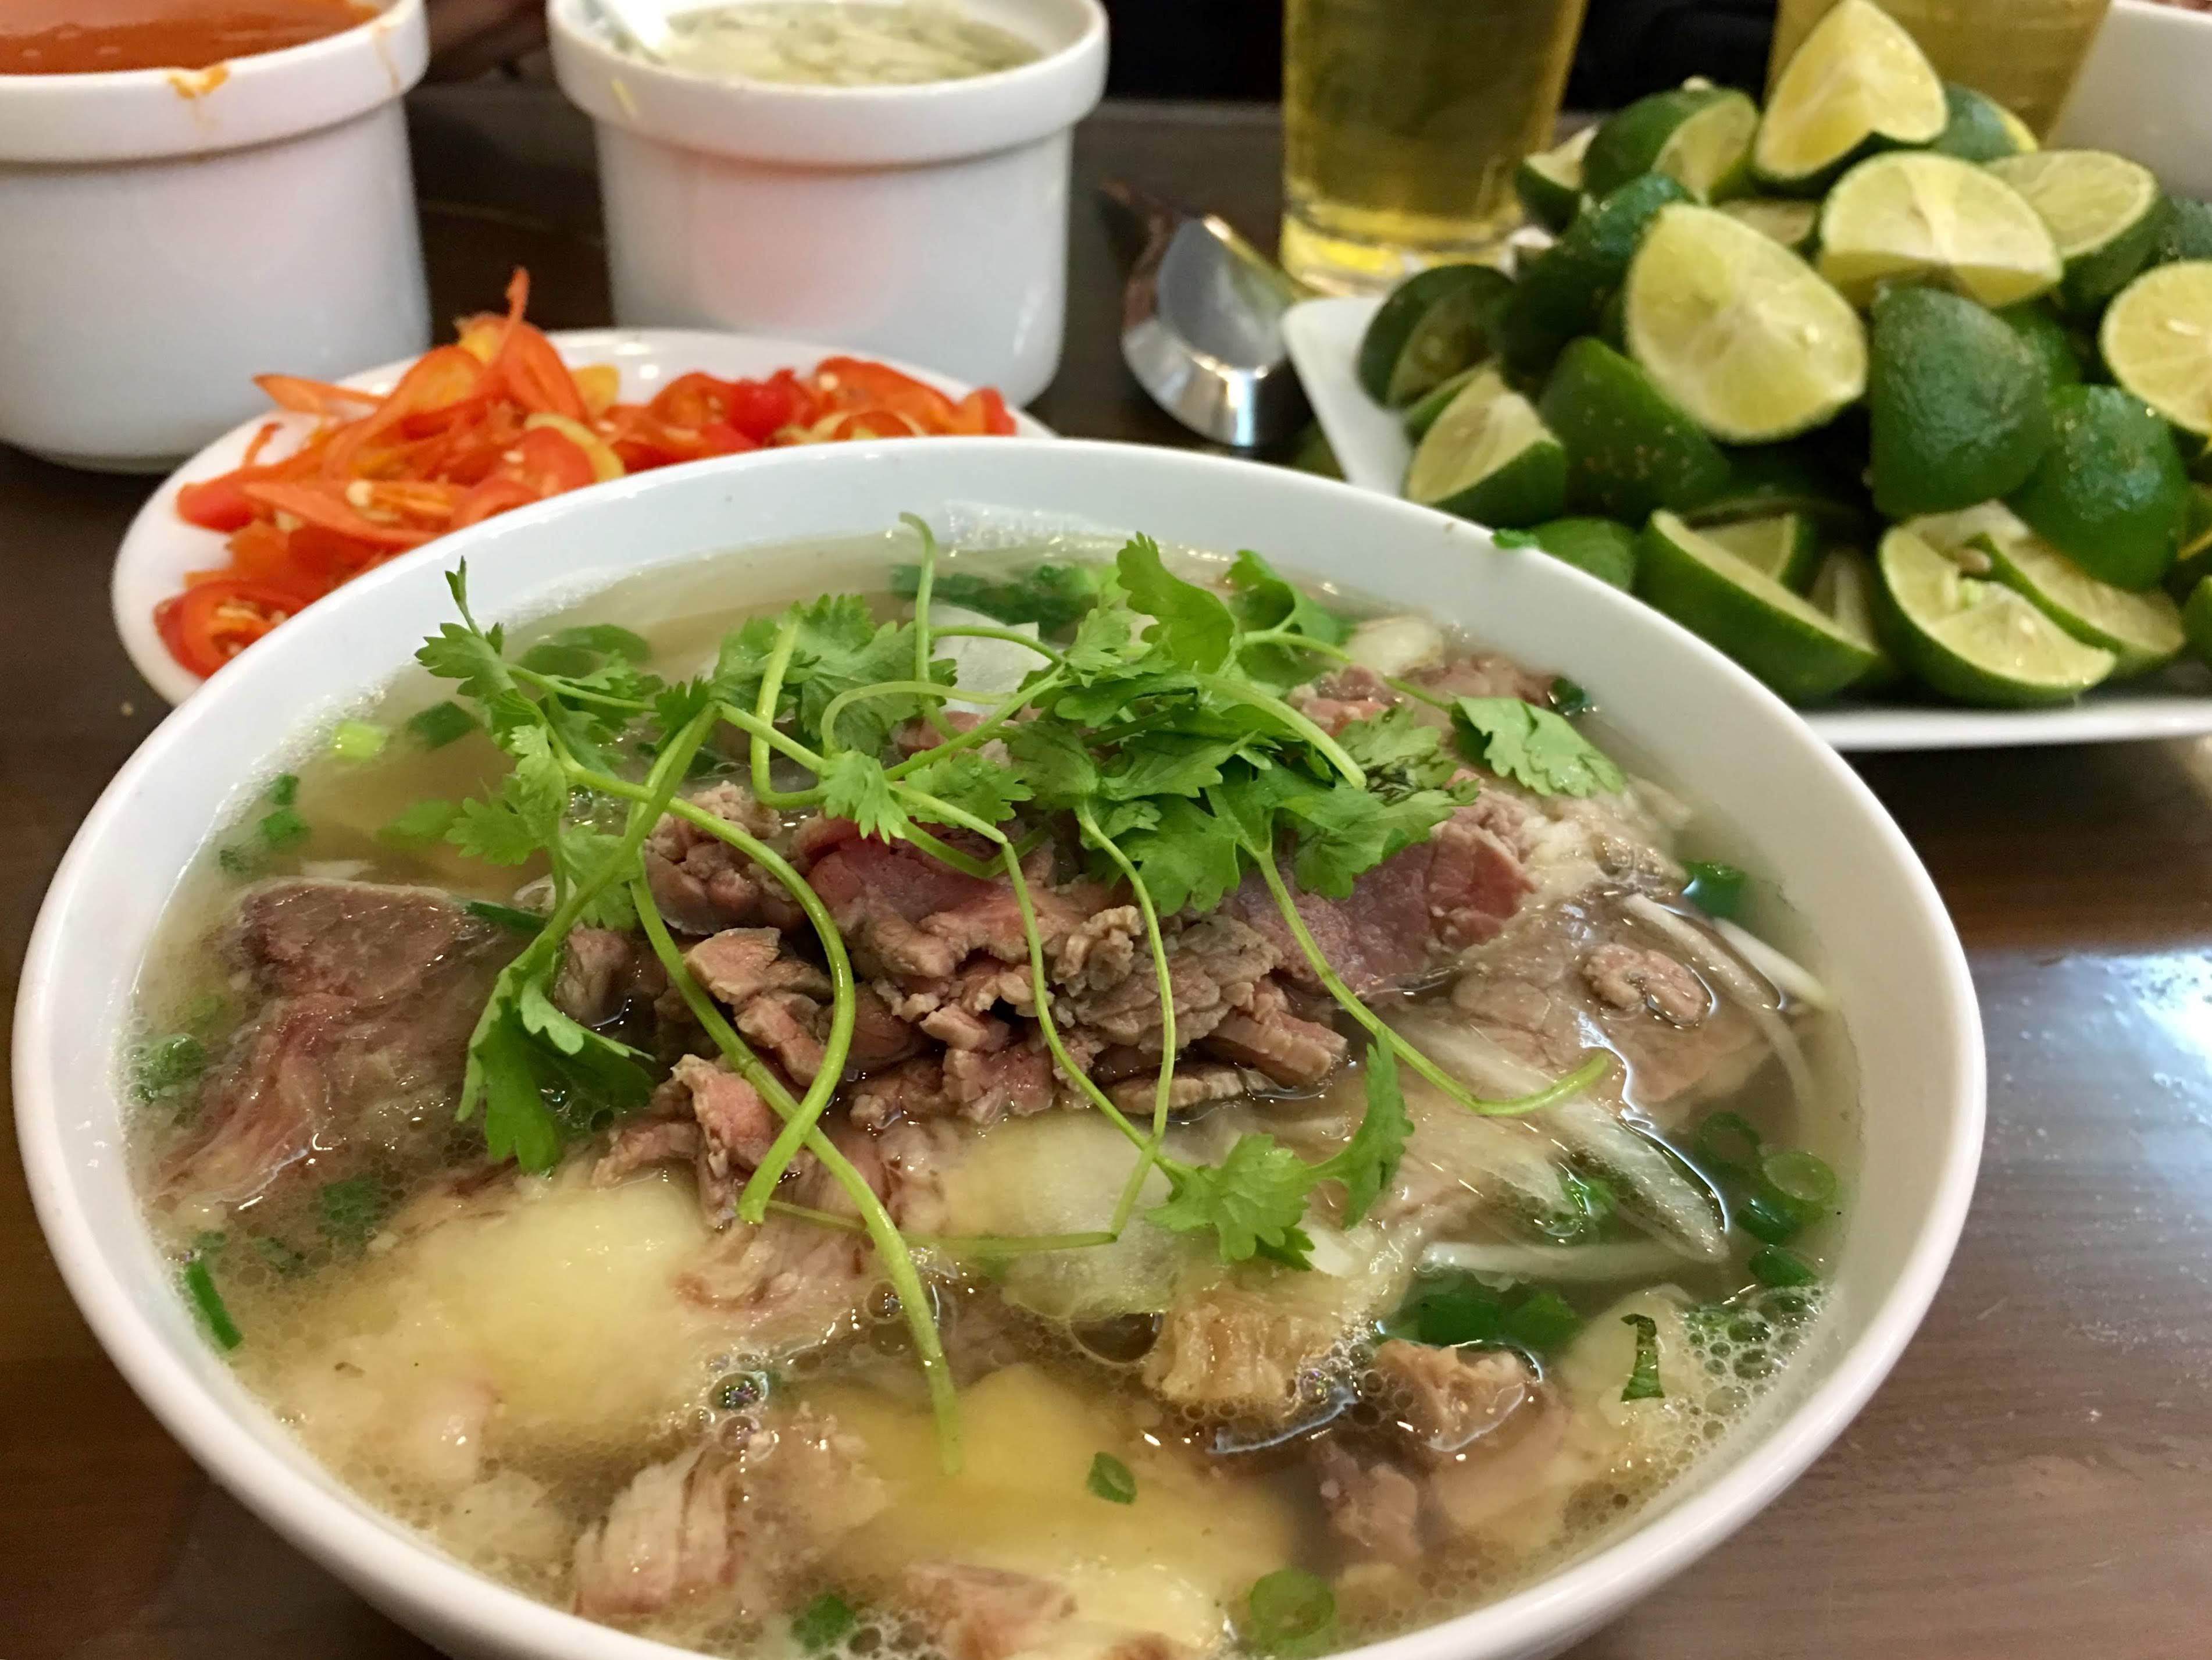 Northen-styled pho is served at a restaurant in Hanoi's Hoan Kiem District. Photo: Photo: Dong Nguyen / Tuoi Tre News